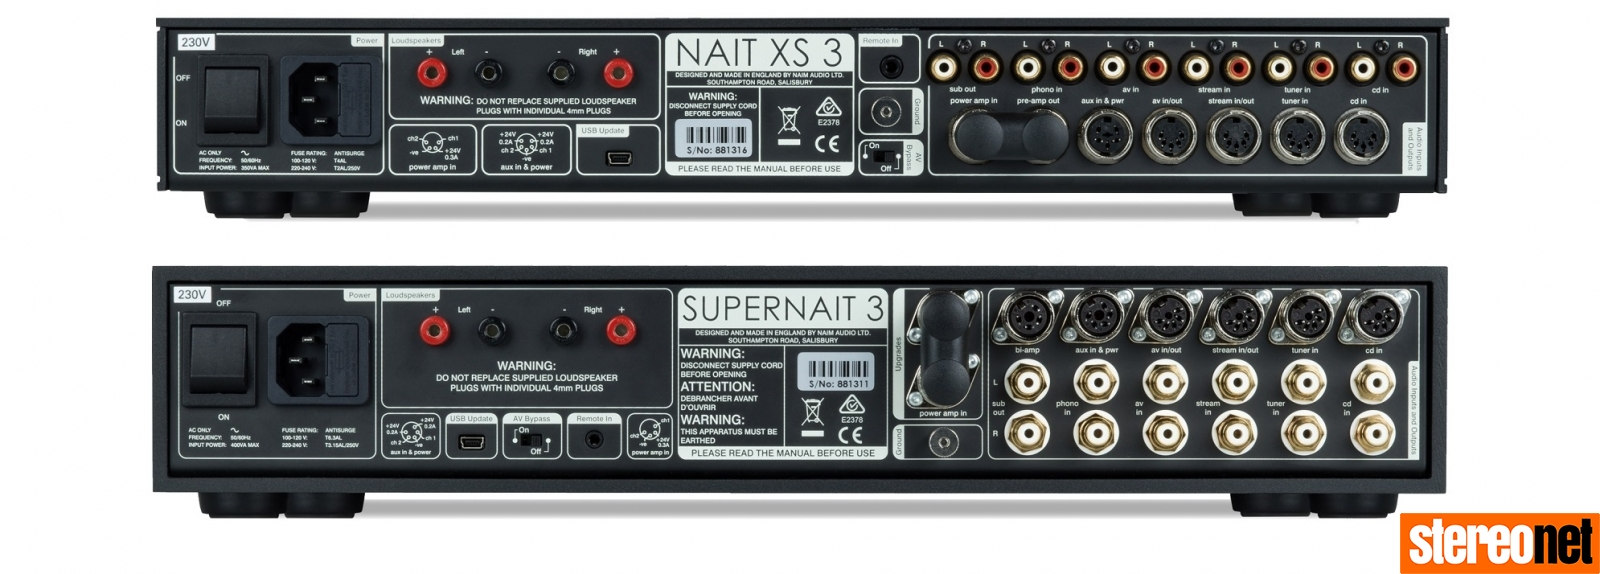 Nait XS3 and Supernait 3 demo review